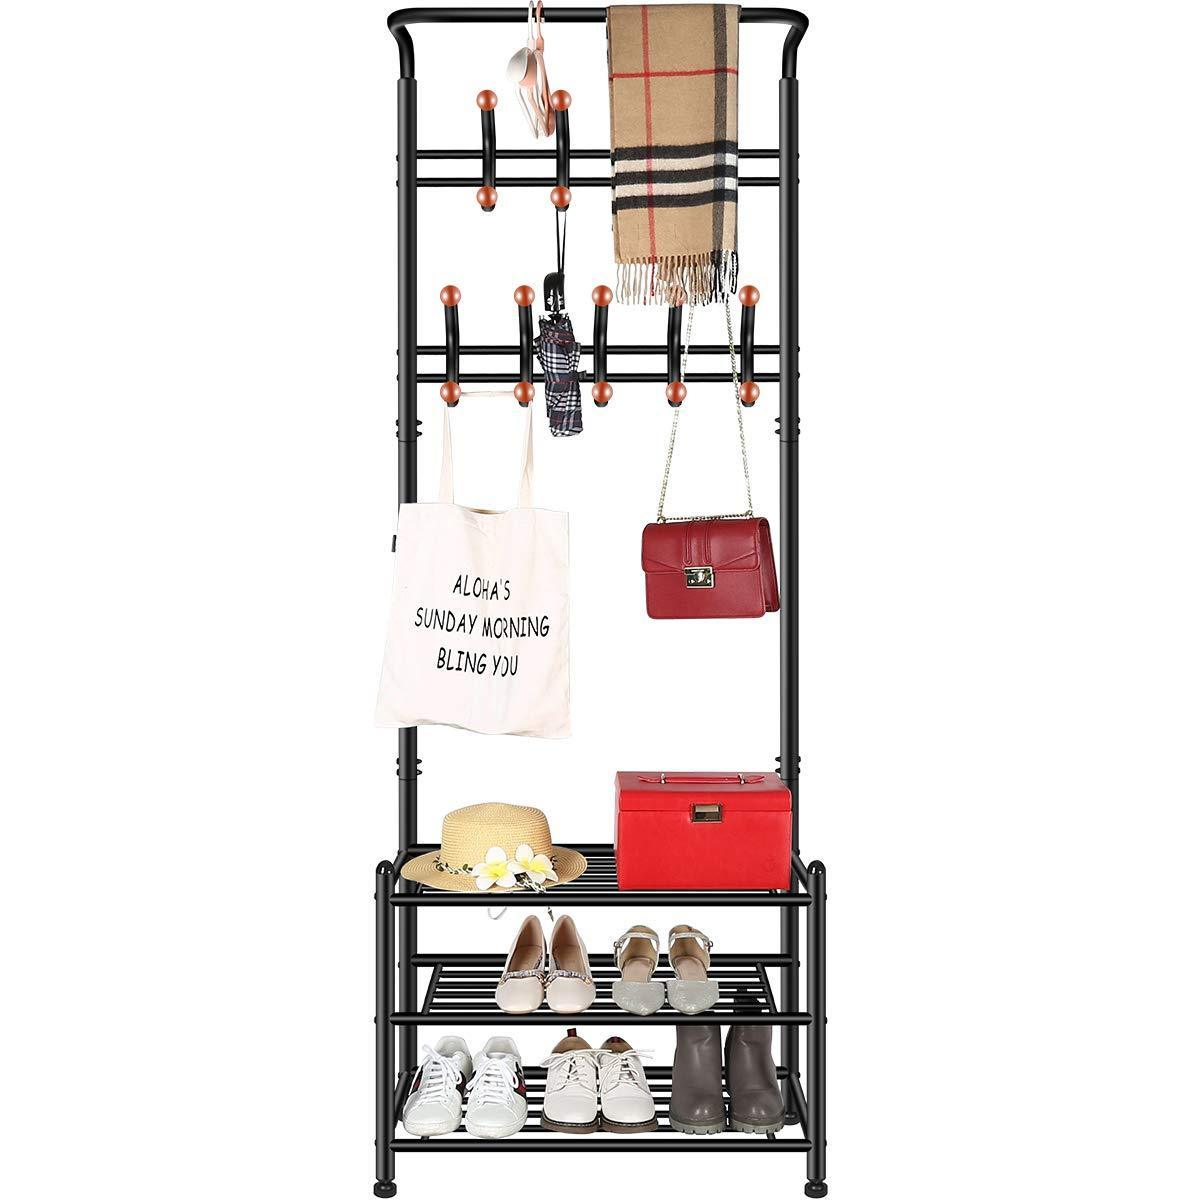 Purchase tomcare coat rack with 3 tier shoe rack hall tree entryway bench organizer 18 hooks coat hanger hat racks heavy duty with shoe storage shelves metal black for doorway hallway